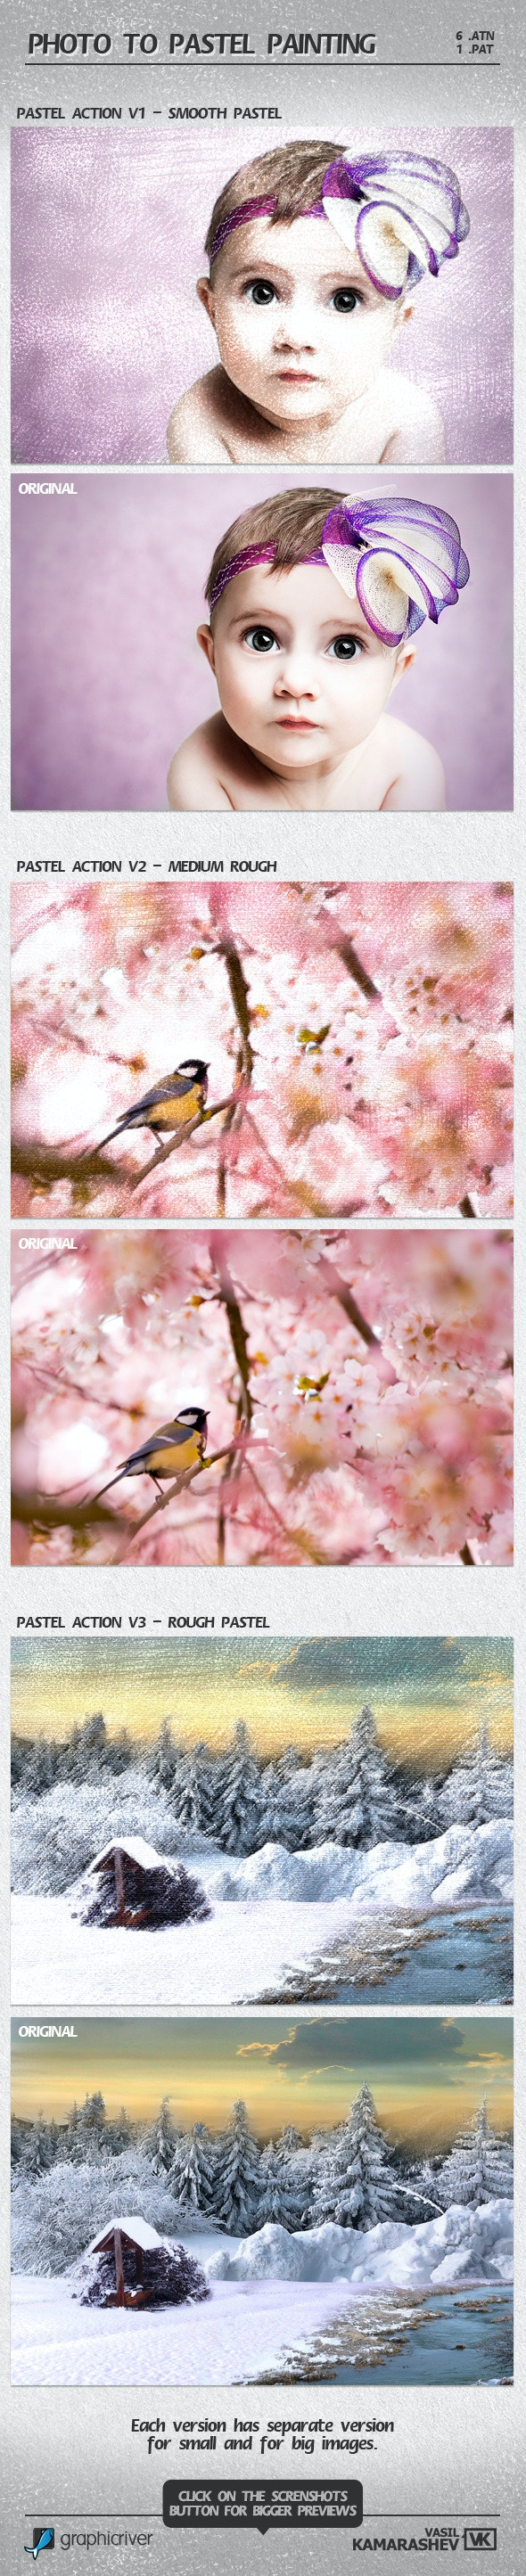 Photo to Pastel Painting - Photo Effects Actions